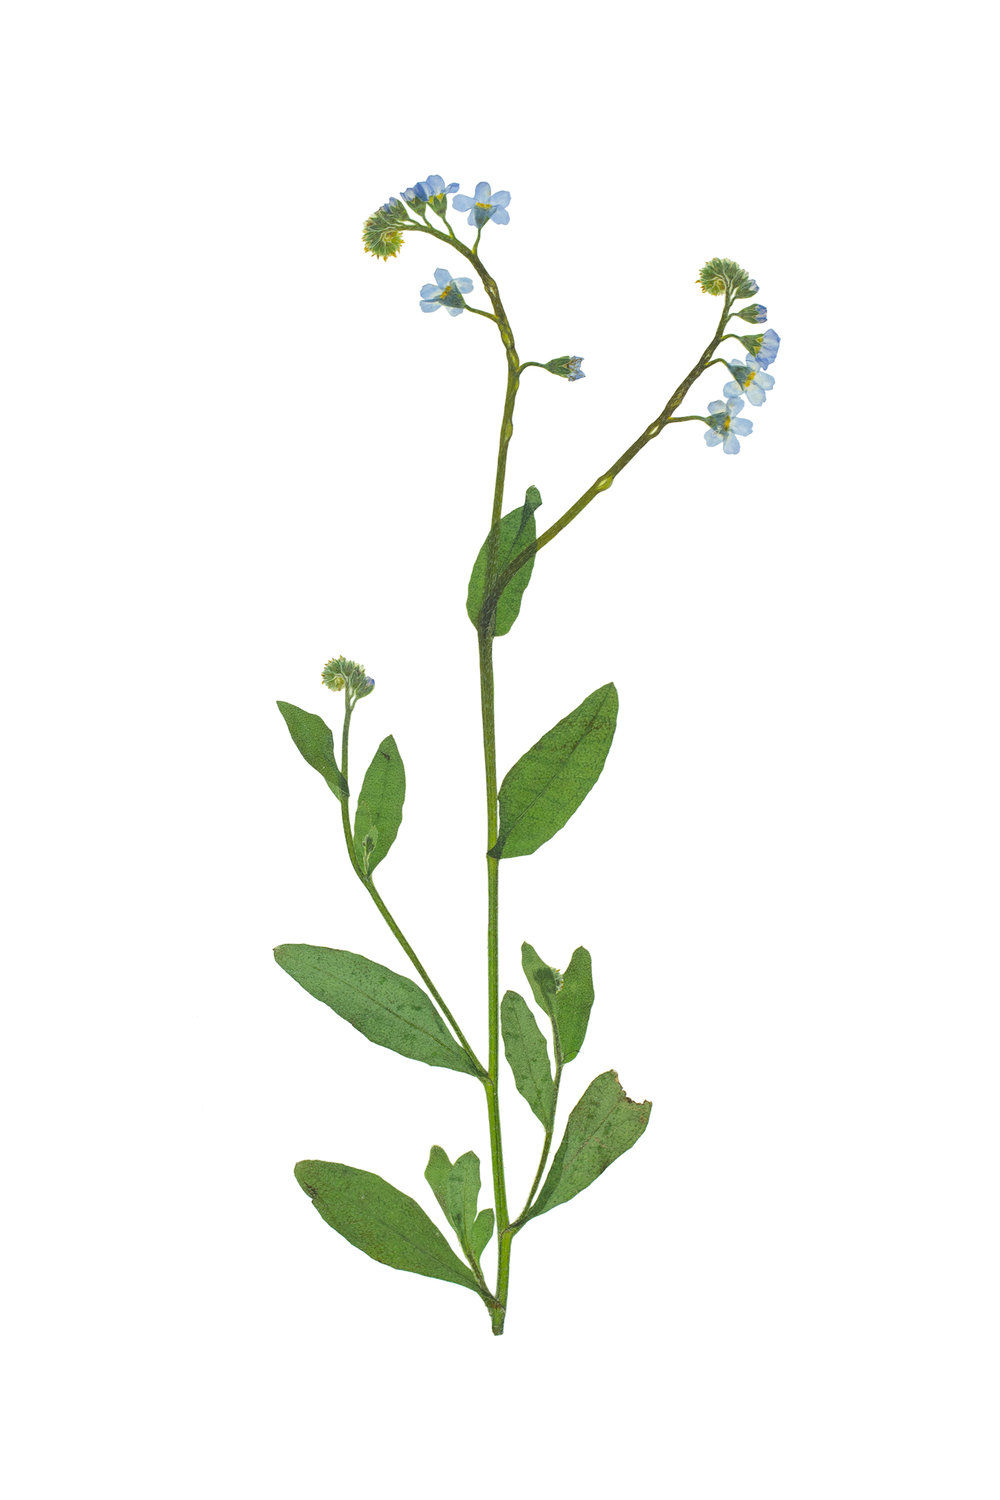 True Forget-Me-Not / Myosotis scorpioides